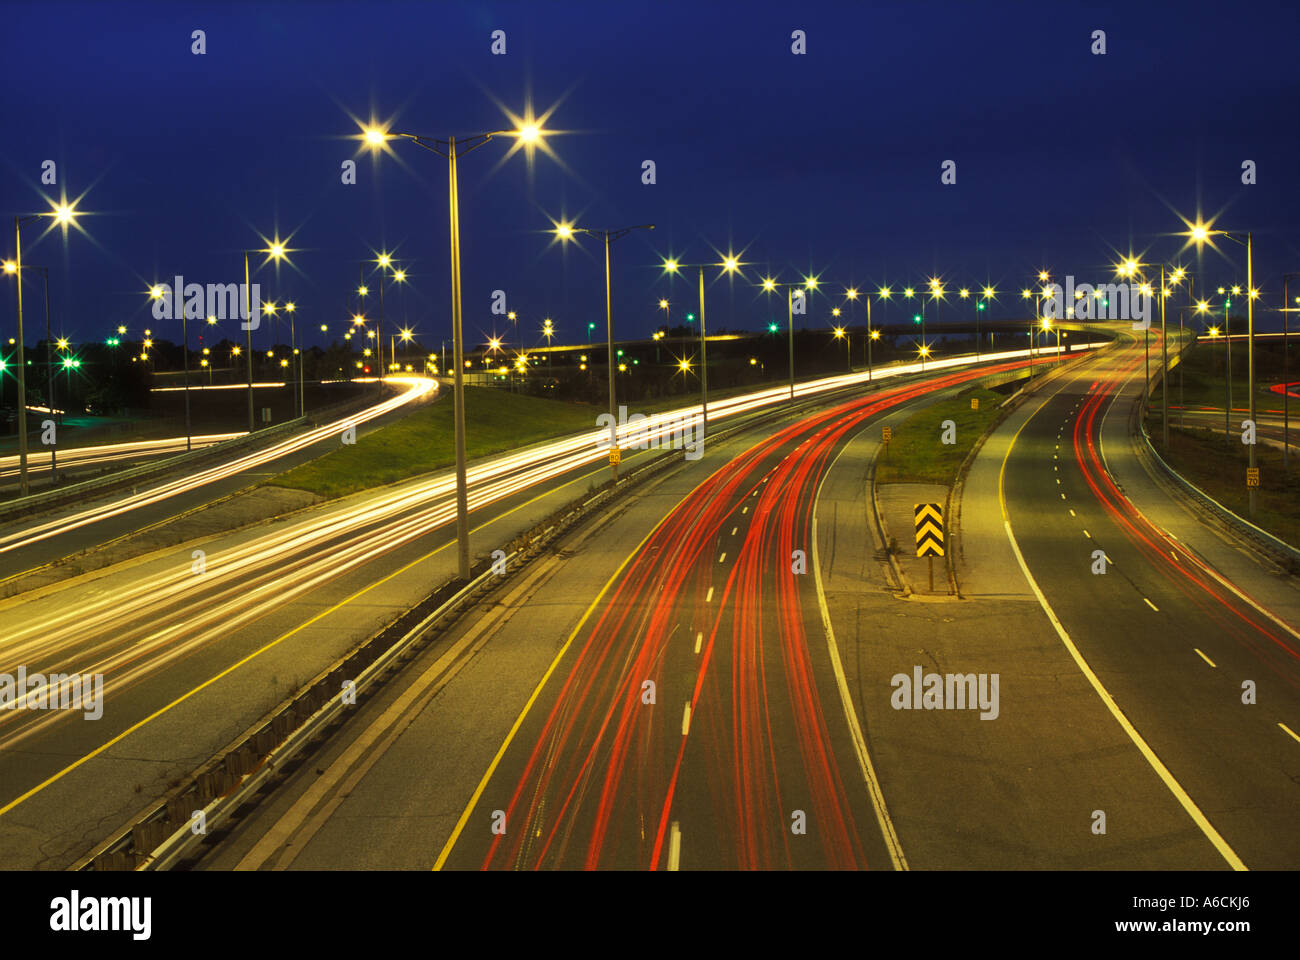 Canada Ontario Niagara Falls time exposure of overview of highway traffic at night - Stock Image